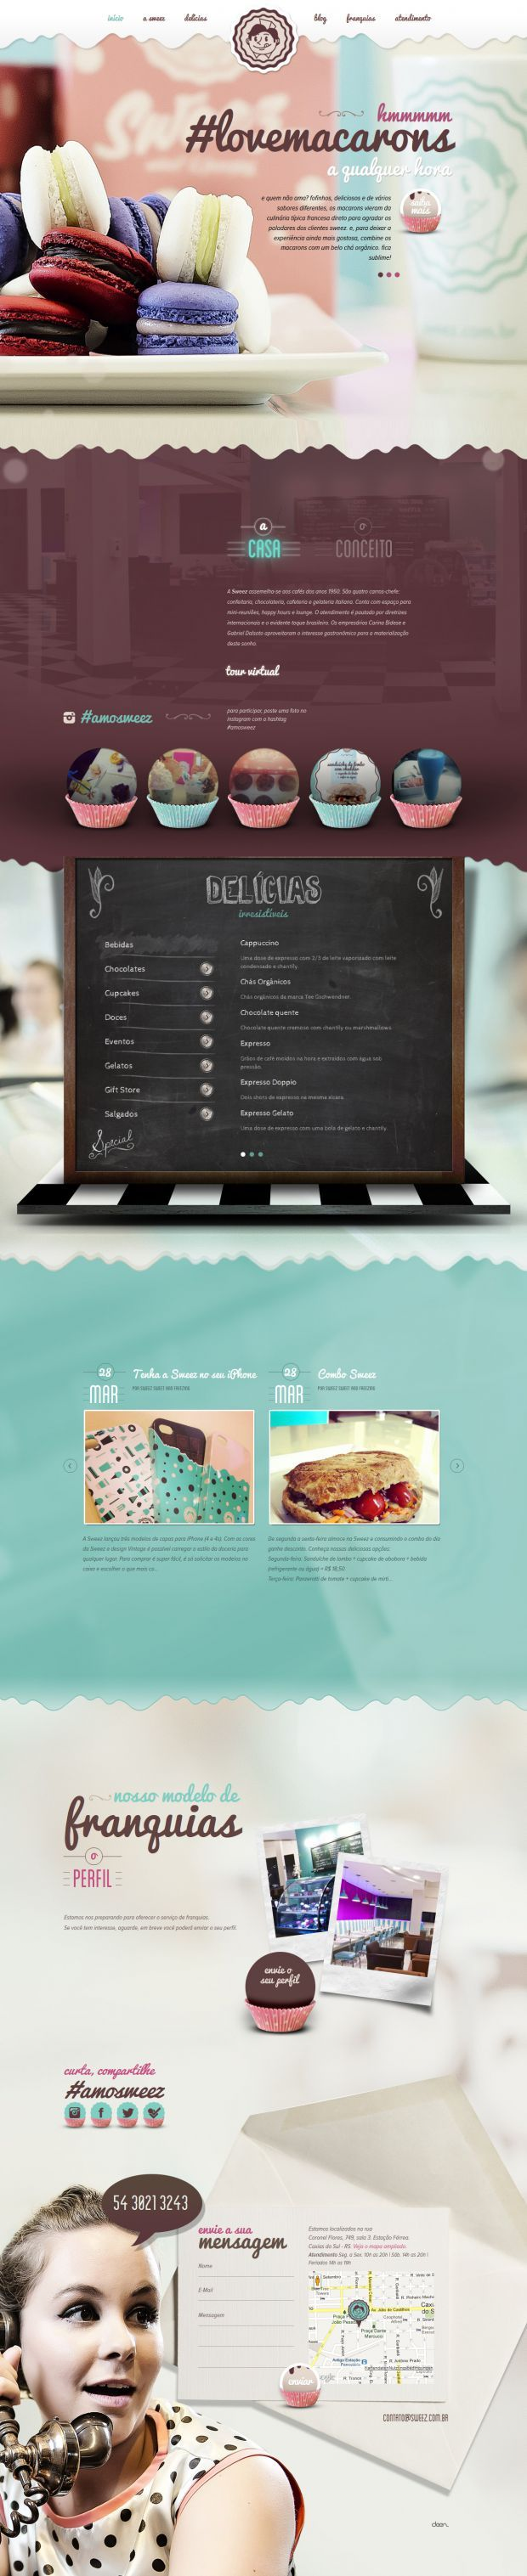 Sweez - Sweet and Freezing - Webdesign inspiration www.niceoneilike.com